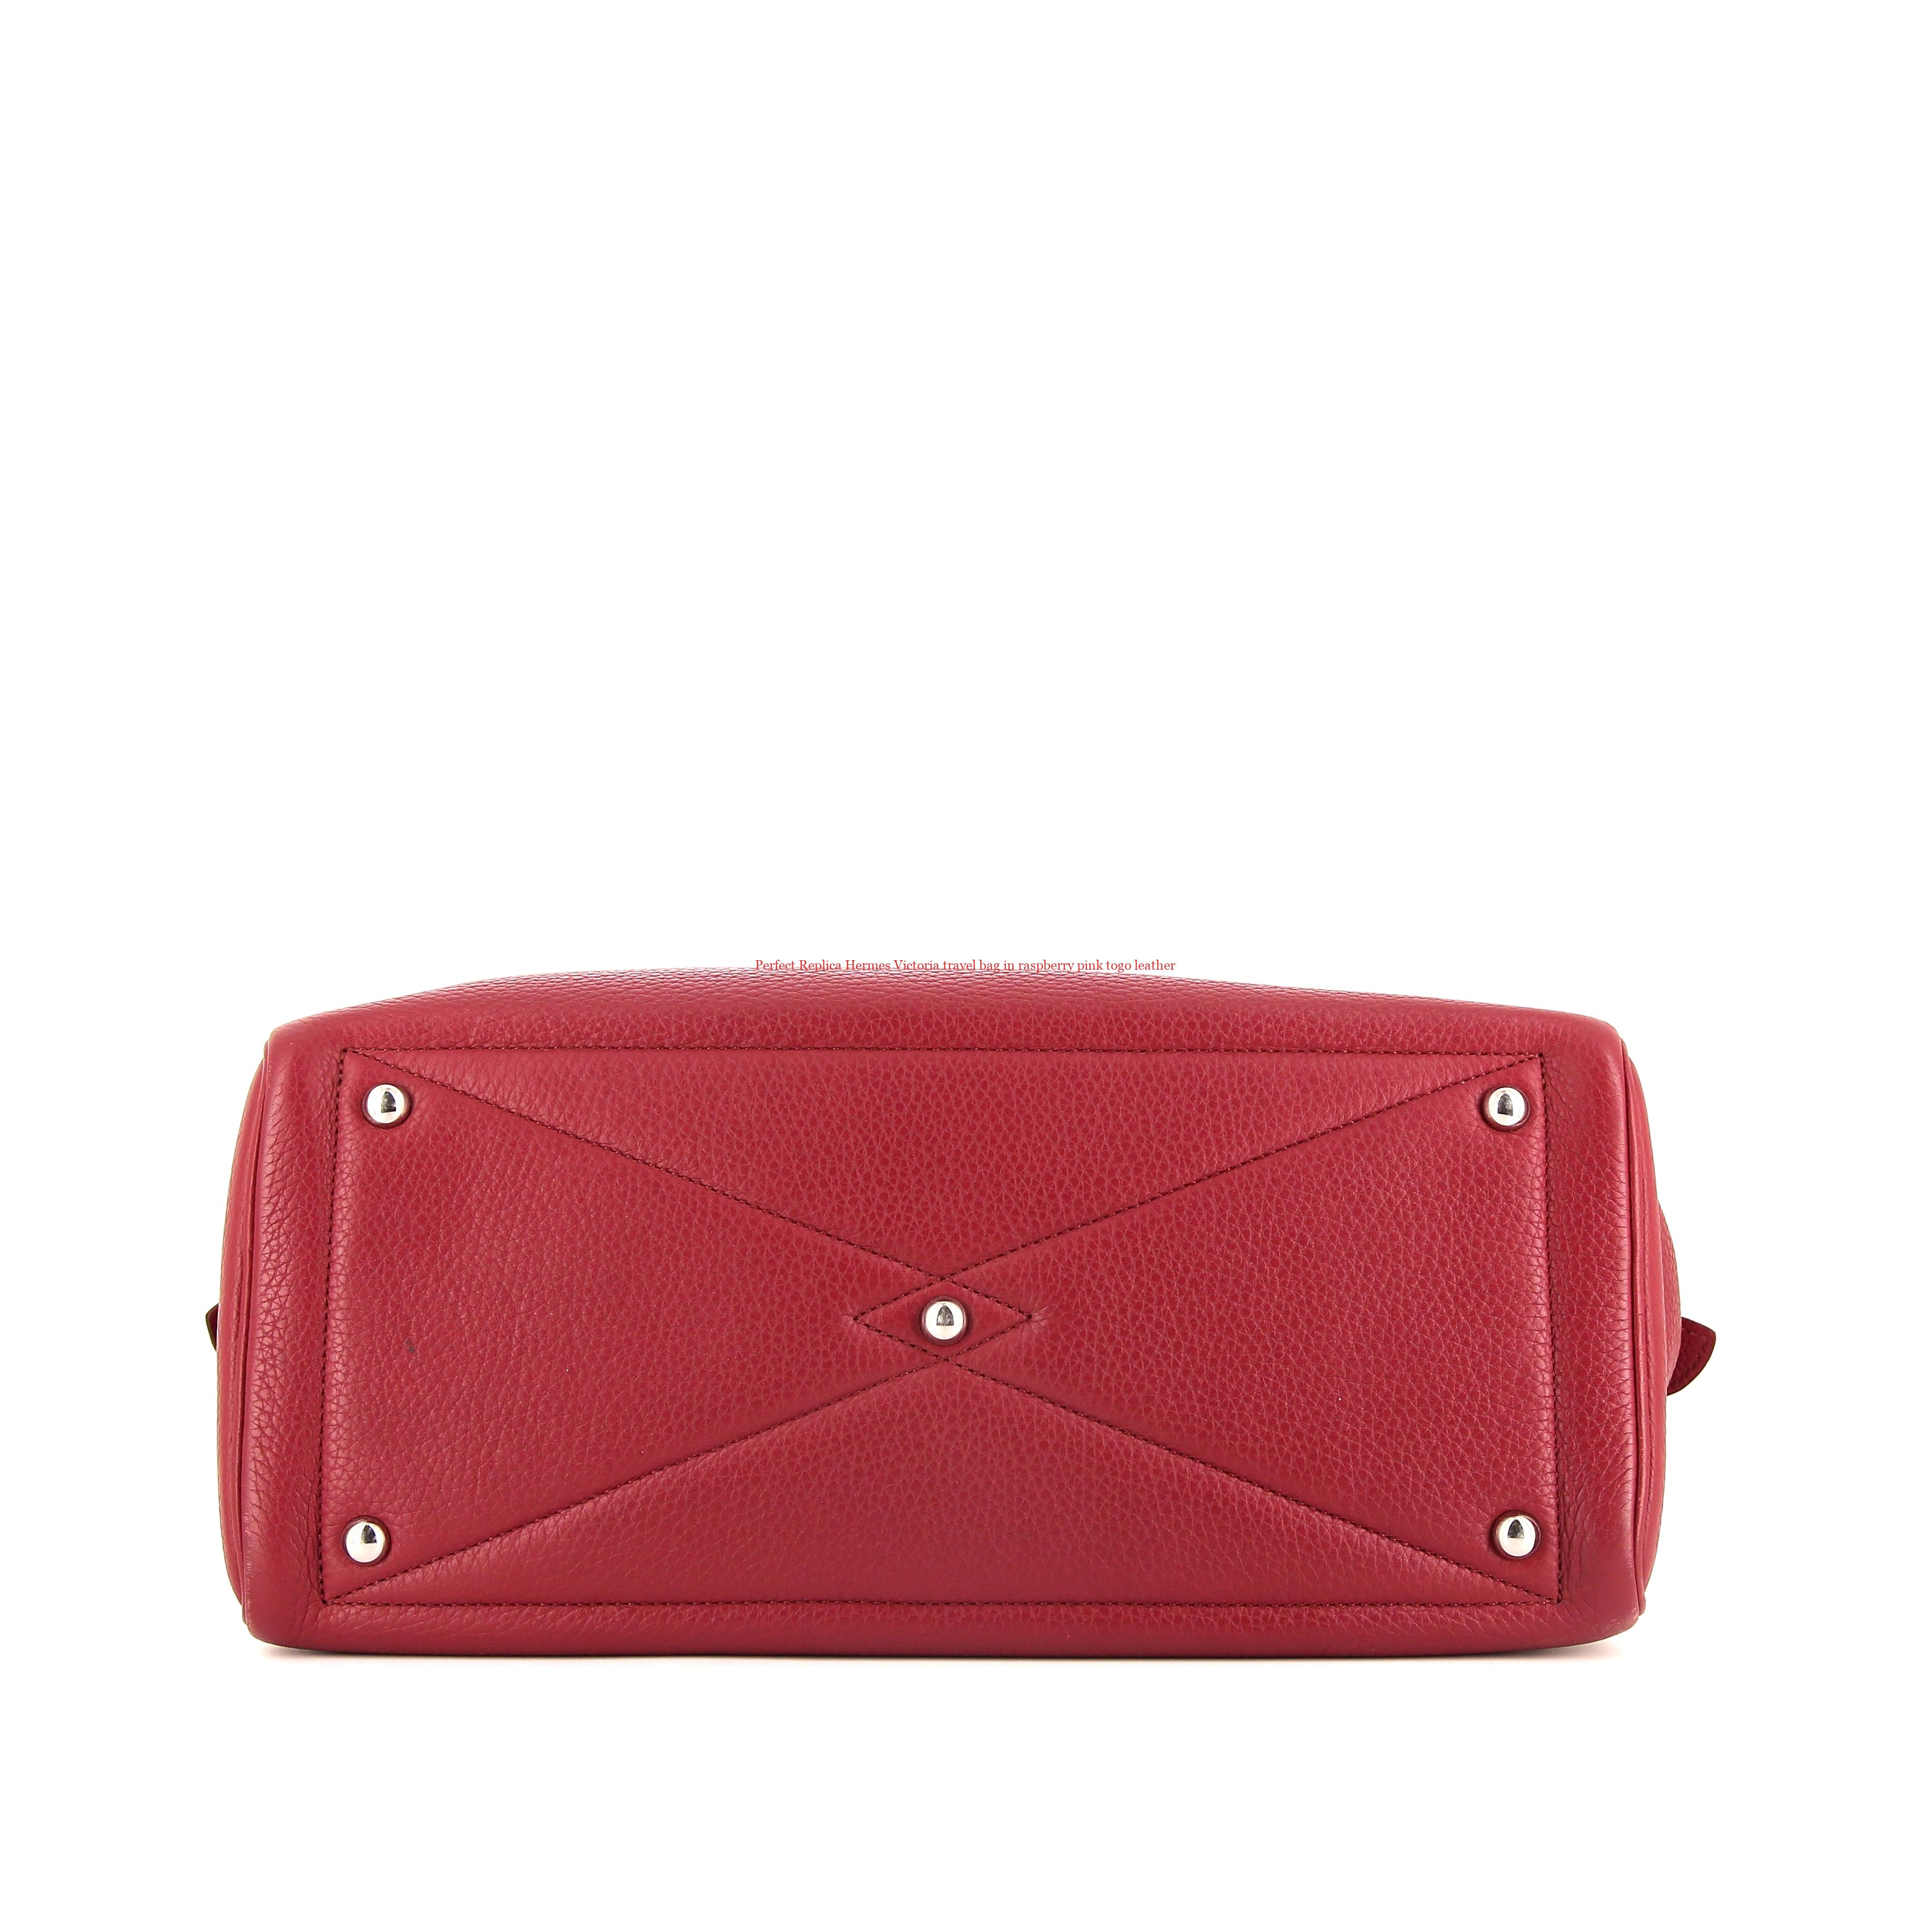 c4baf52563dd Perfect Replica Hermes Victoria travel bag in raspberry pink togo leather – Hermes  Replica Purse Valley CN Handbags Reviews